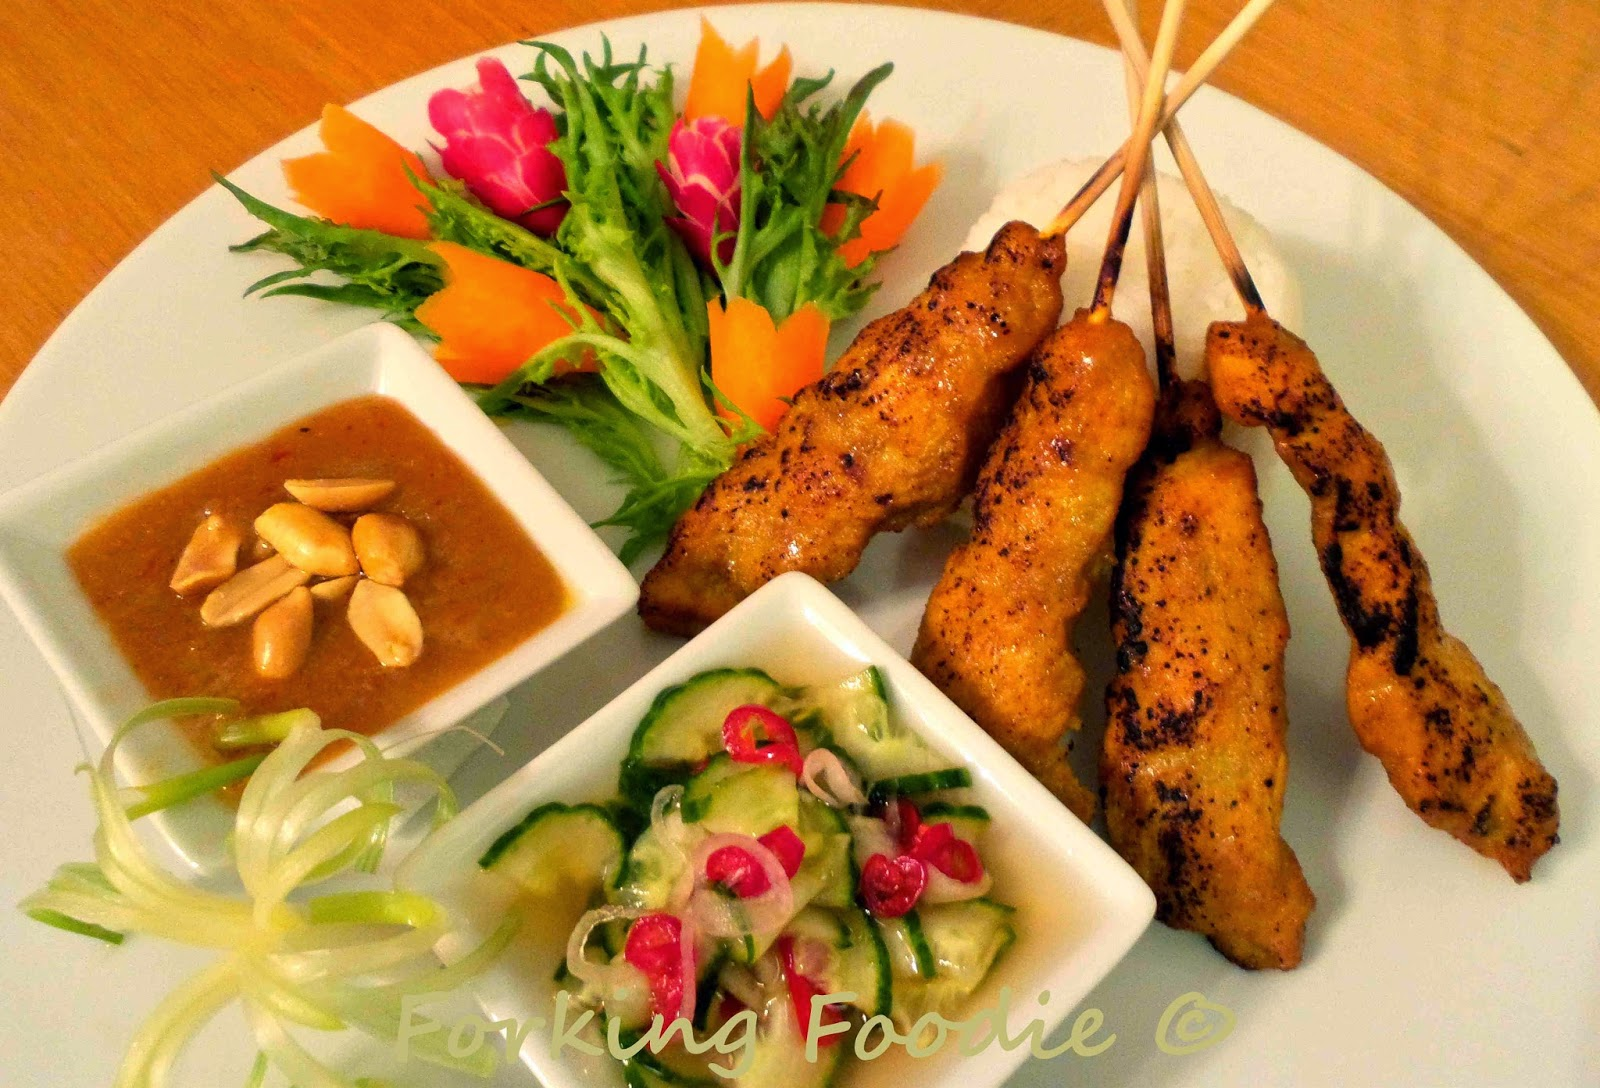 Forking foodie gai satay chicken satay with peanut sauce and gai satay chicken satay with peanut sauce and cucumber salad forumfinder Images